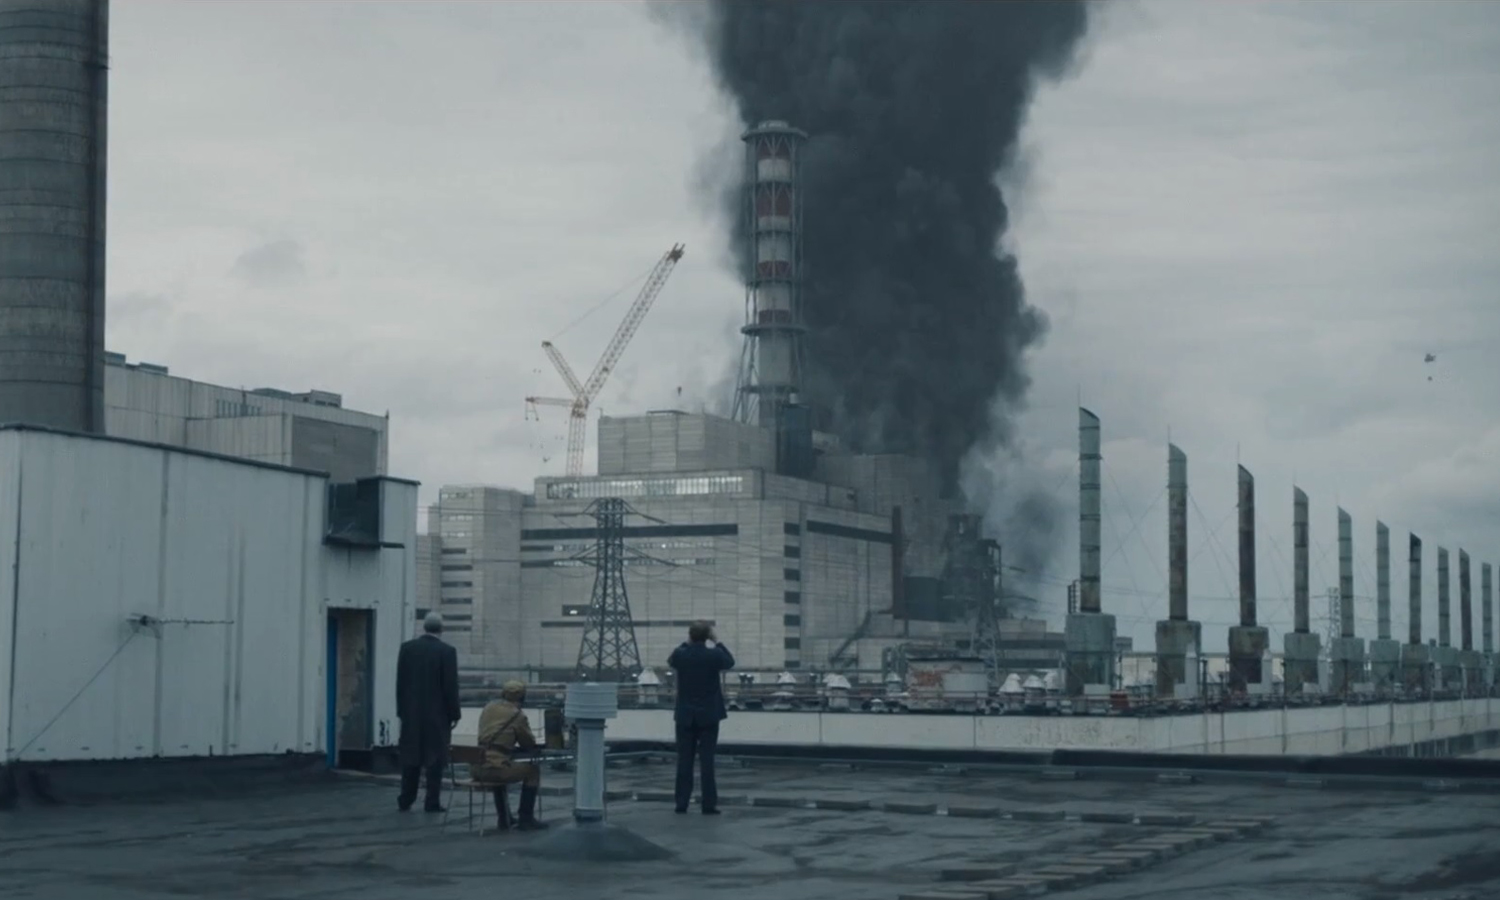 Chernobyl HBO miniseries - Burning reacor